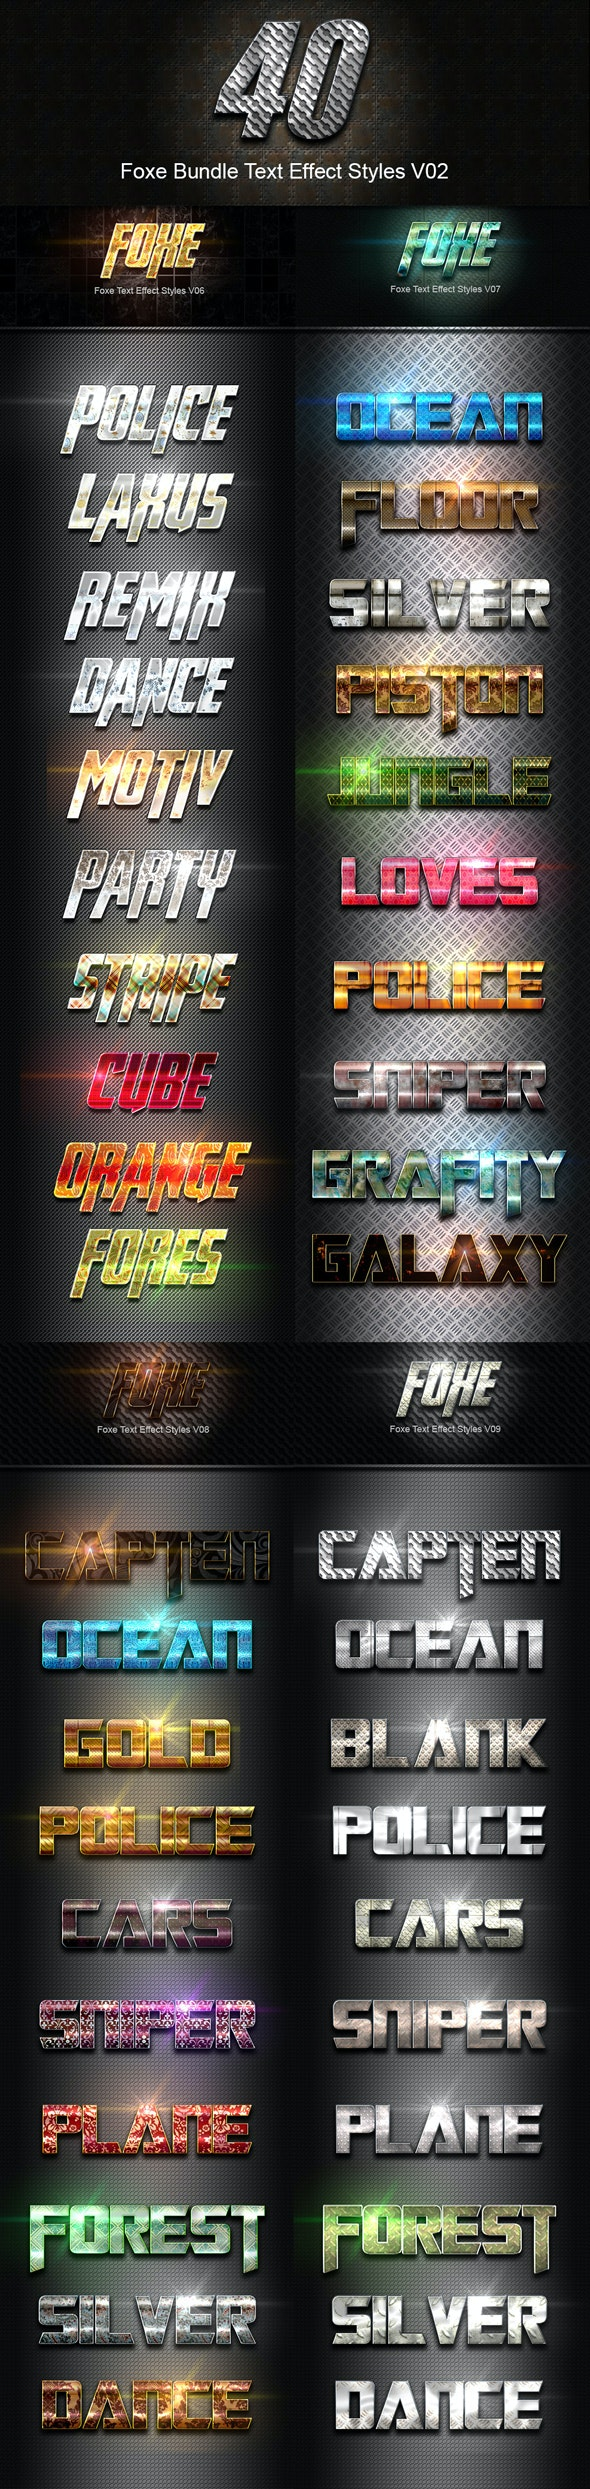 40 Foxe Bundle Text Effect Styles V02 - Text Effects Styles